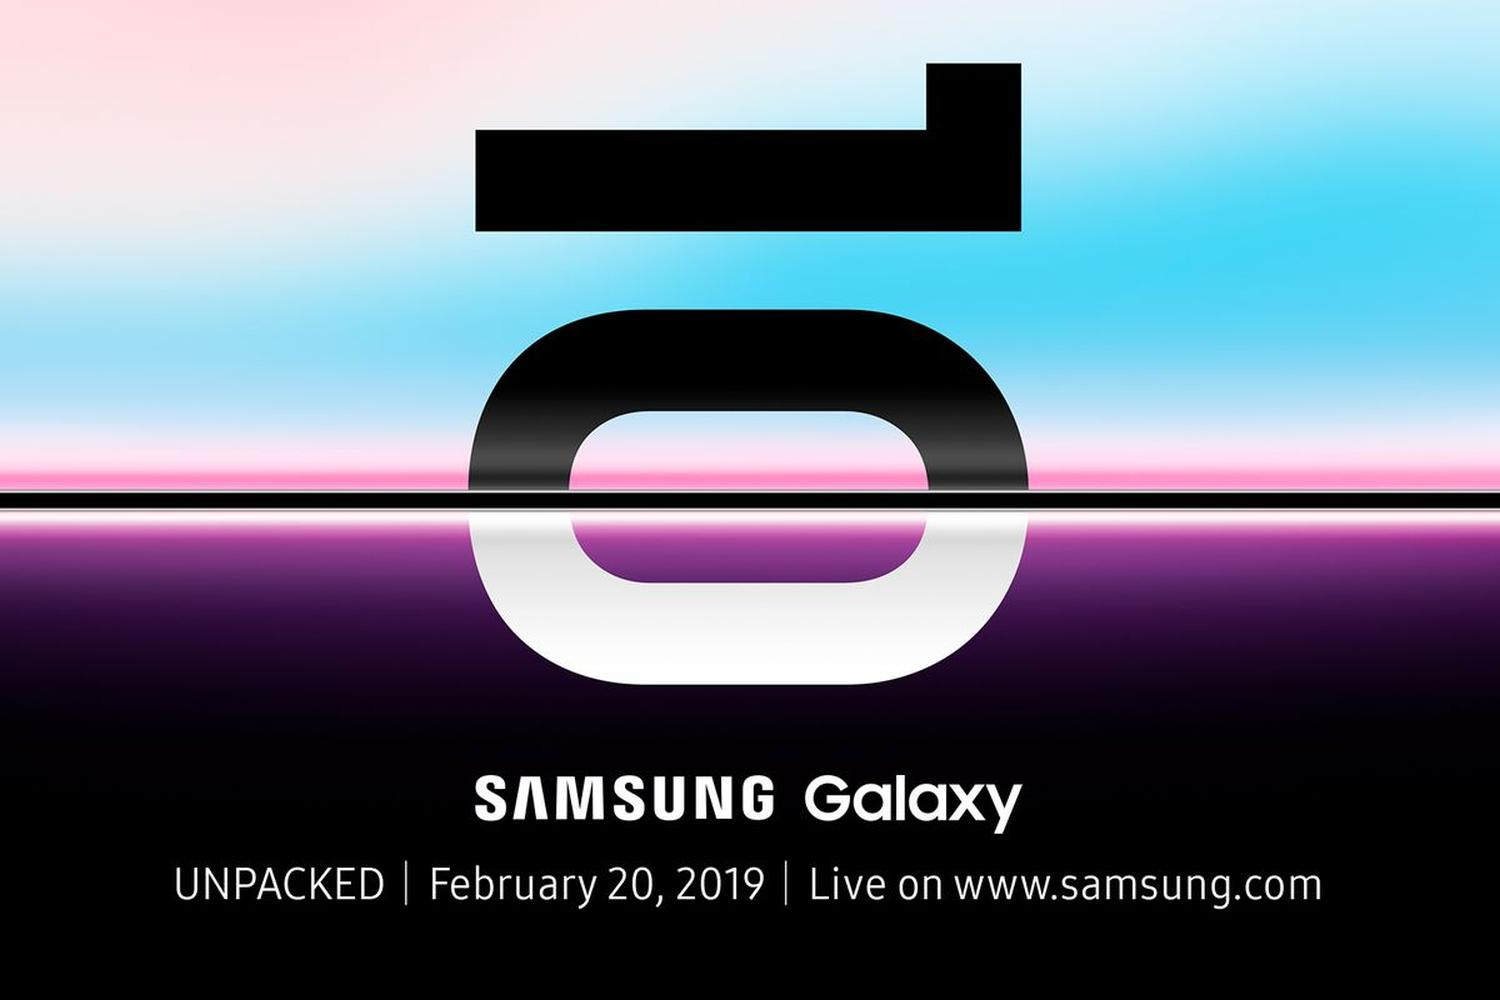 galaxy s10 unpacked logo